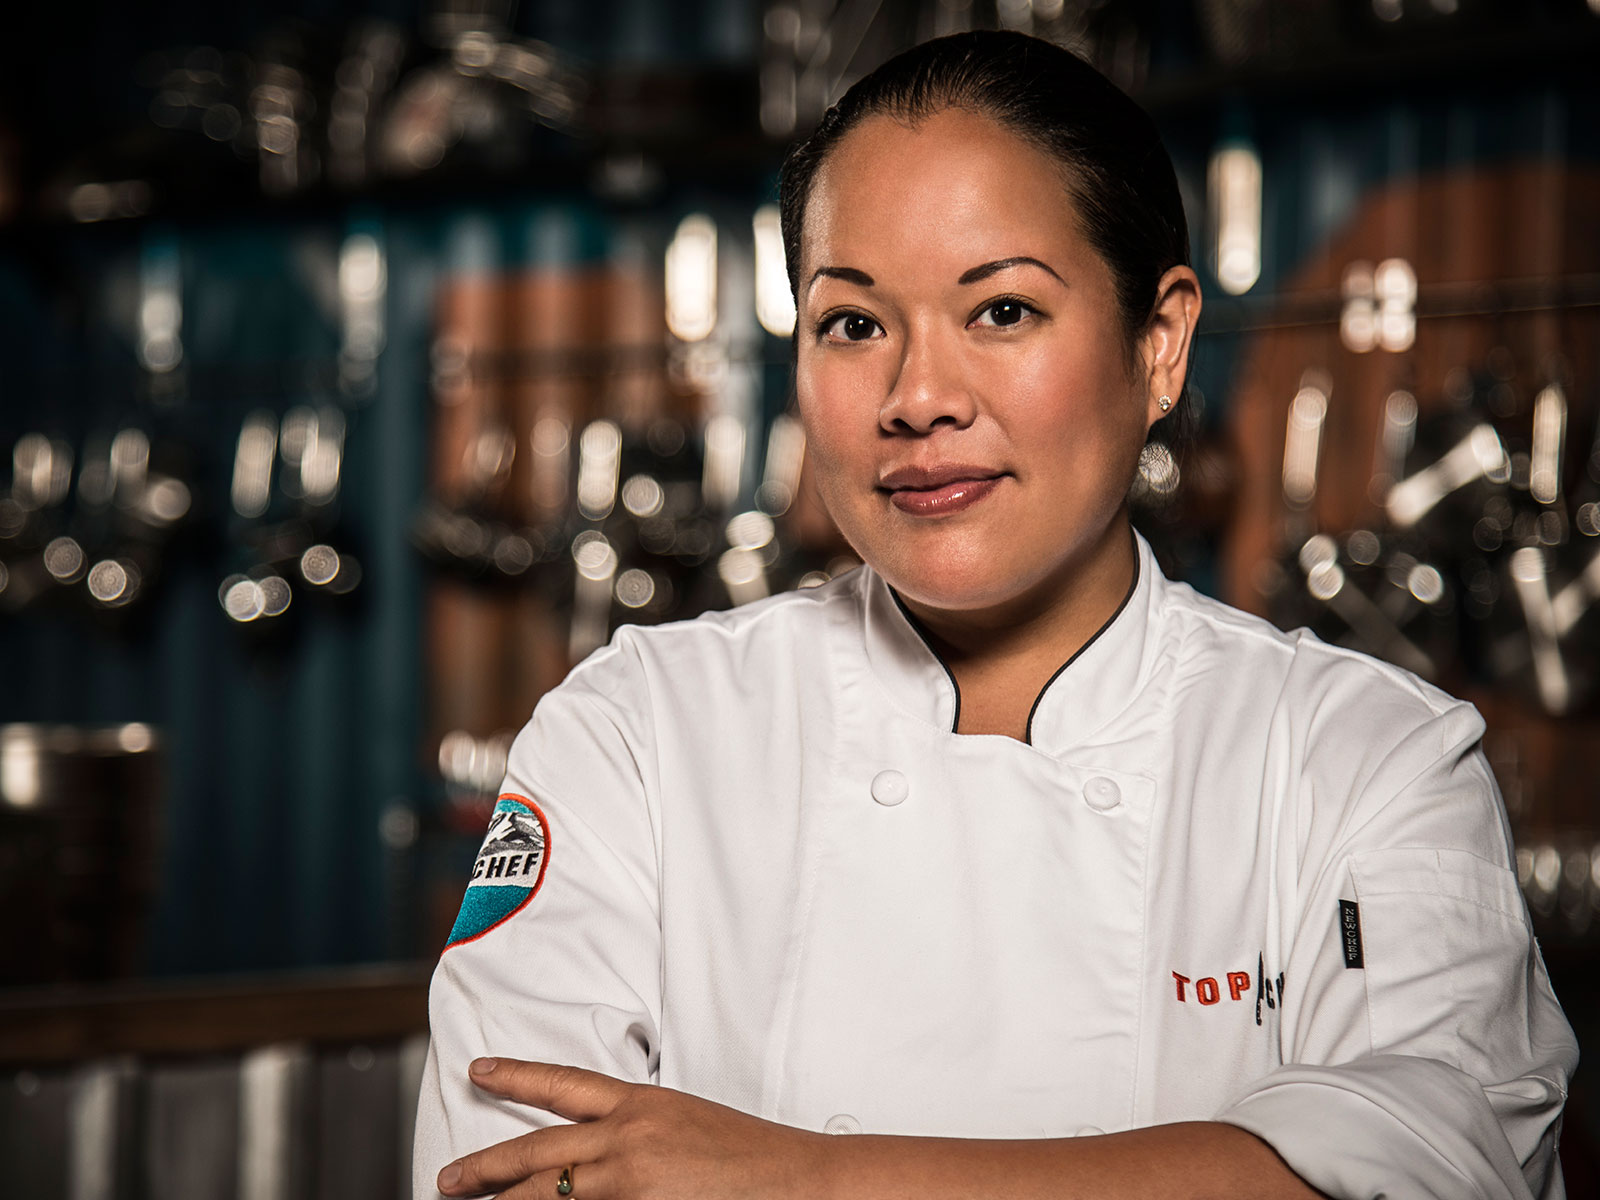 'Top Chef's' Lee Anne Wong on Working Behind the Scenes and Getting Back into the Competition